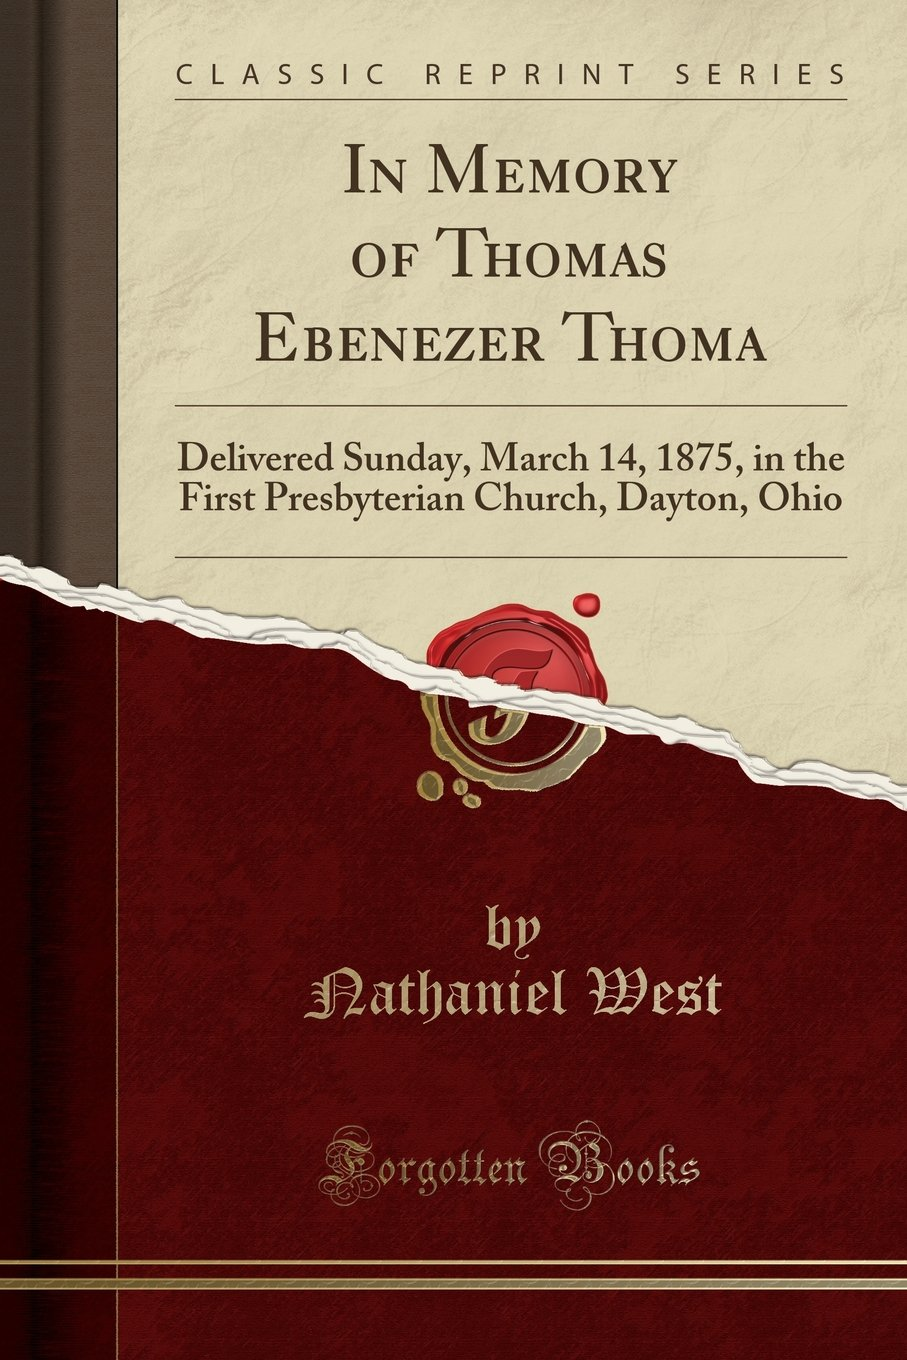 Download In Memory of Thomas Ebenezer Thoma: Delivered Sunday, March 14, 1875, in the First Presbyterian Church, Dayton, Ohio (Classic Reprint) ebook